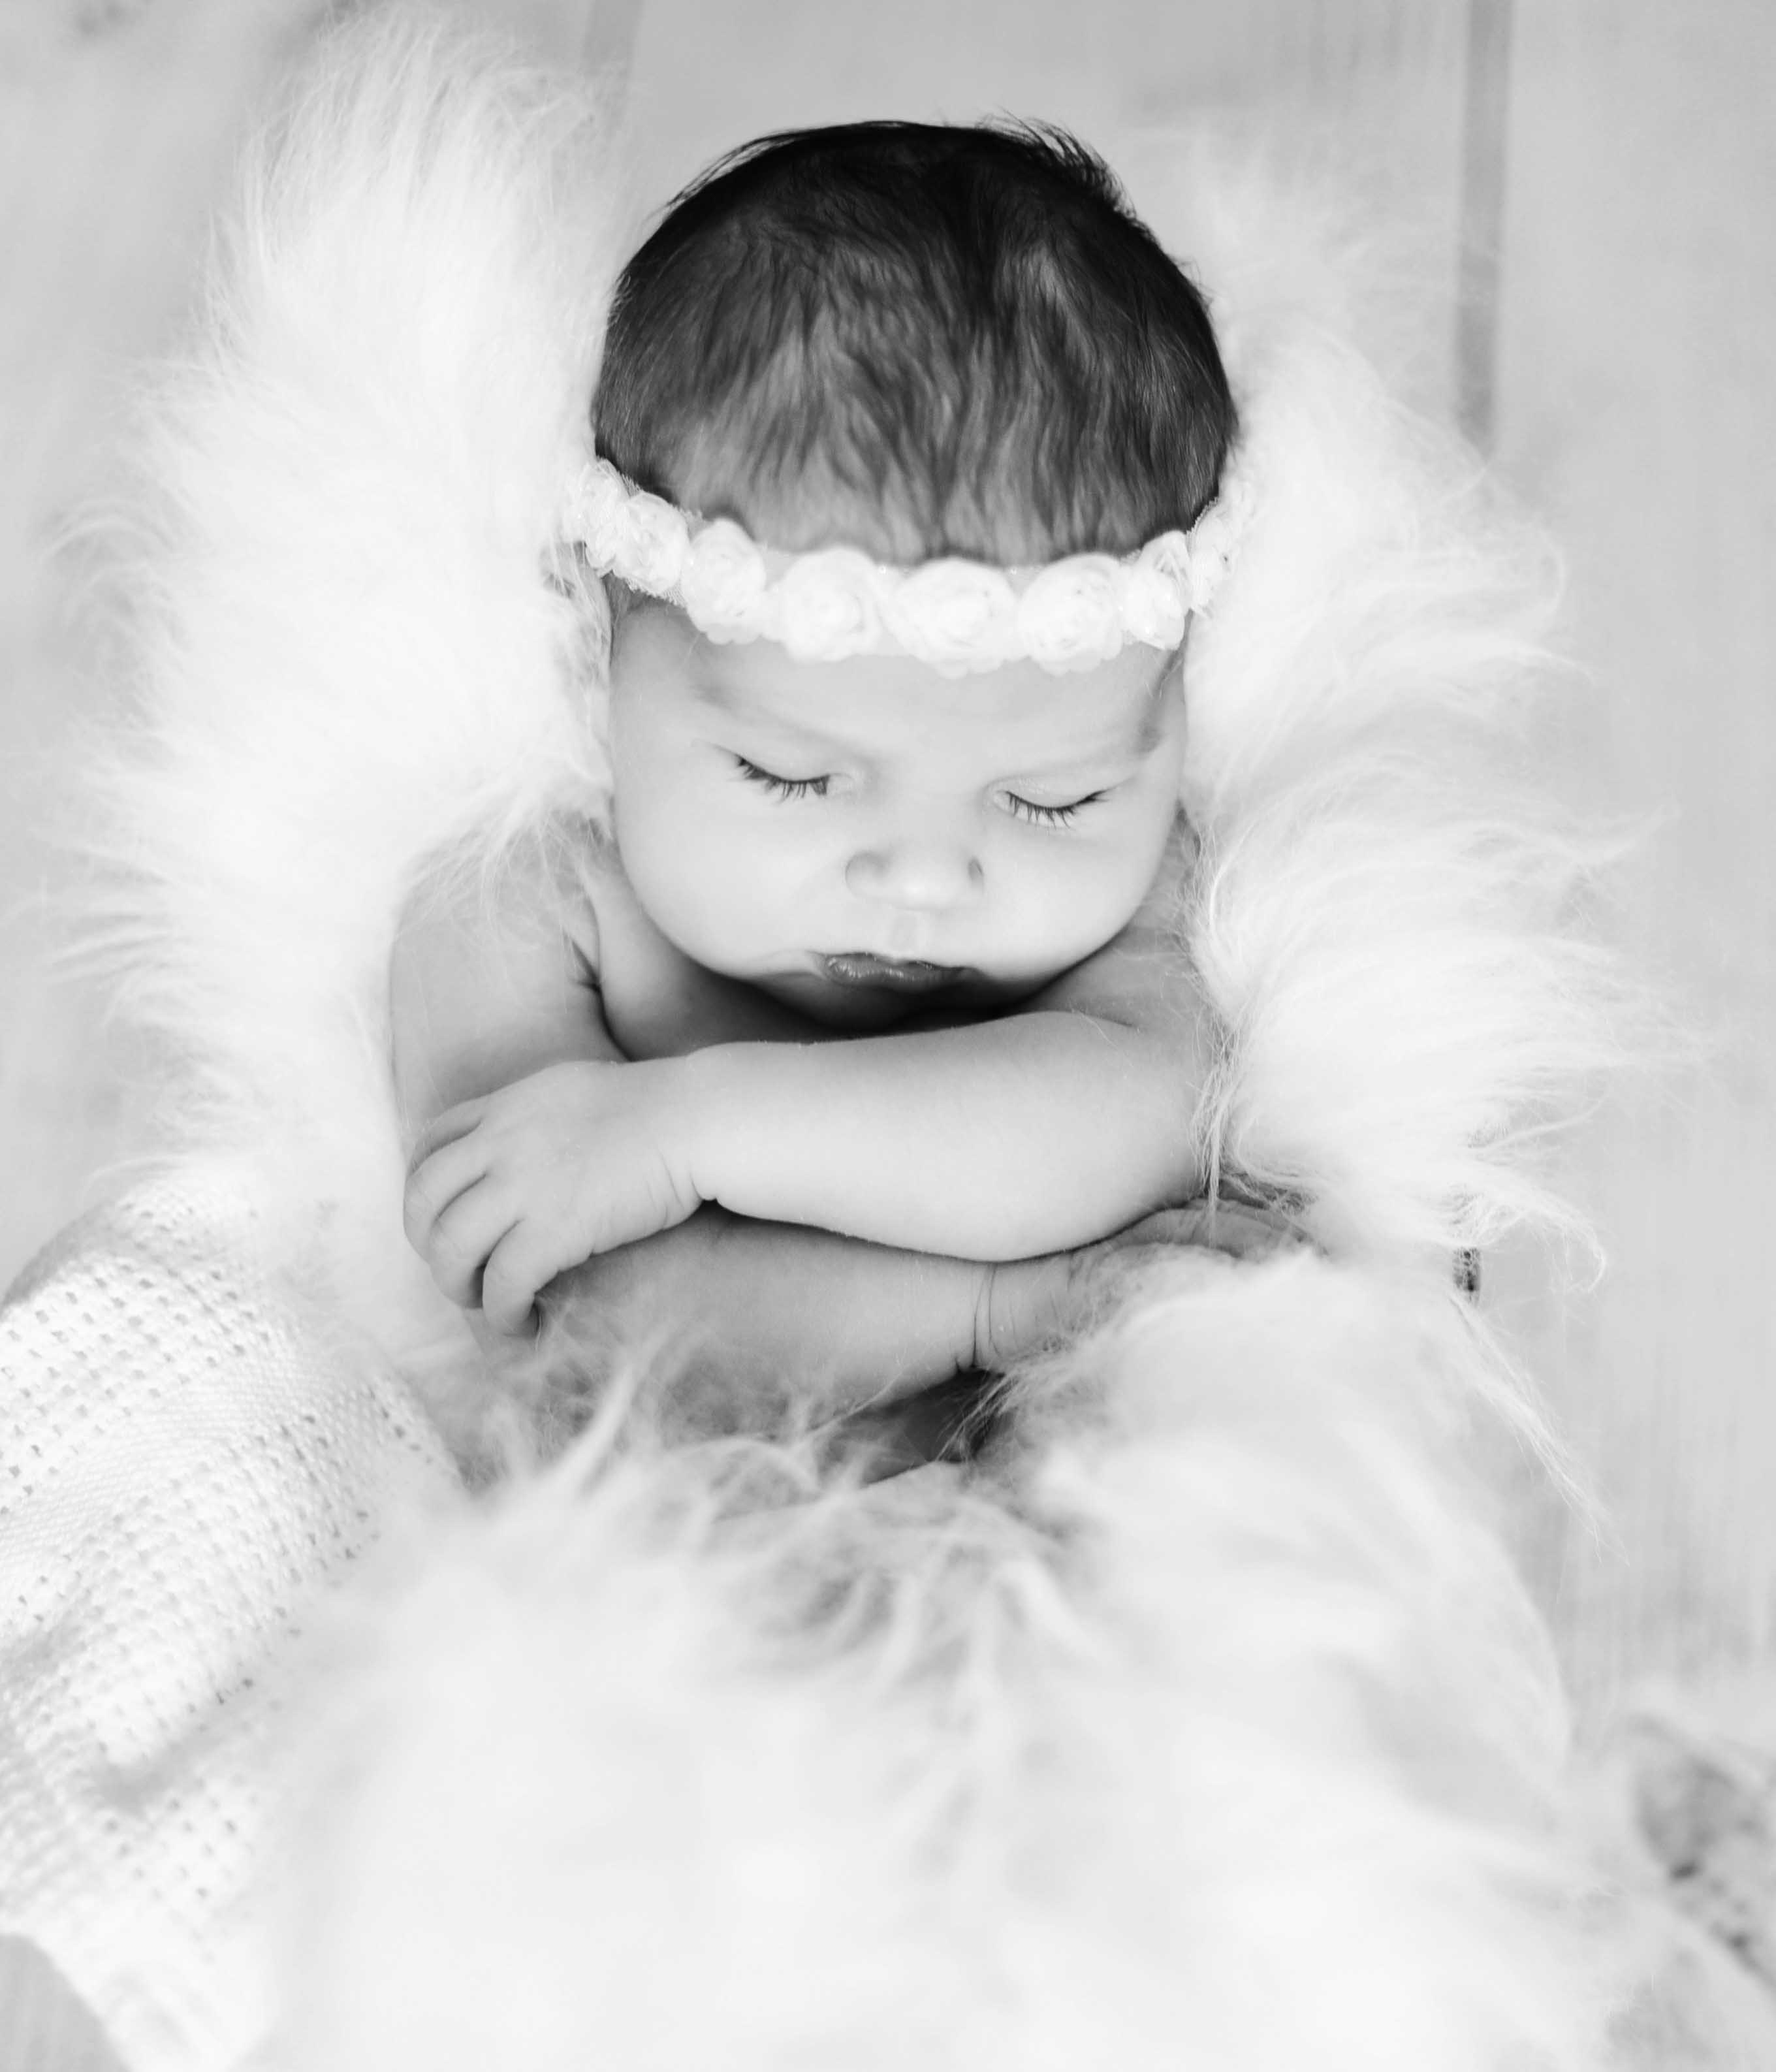 Black and White Newborn Portraits, baby photography, eclectic photography, Brighton, south east